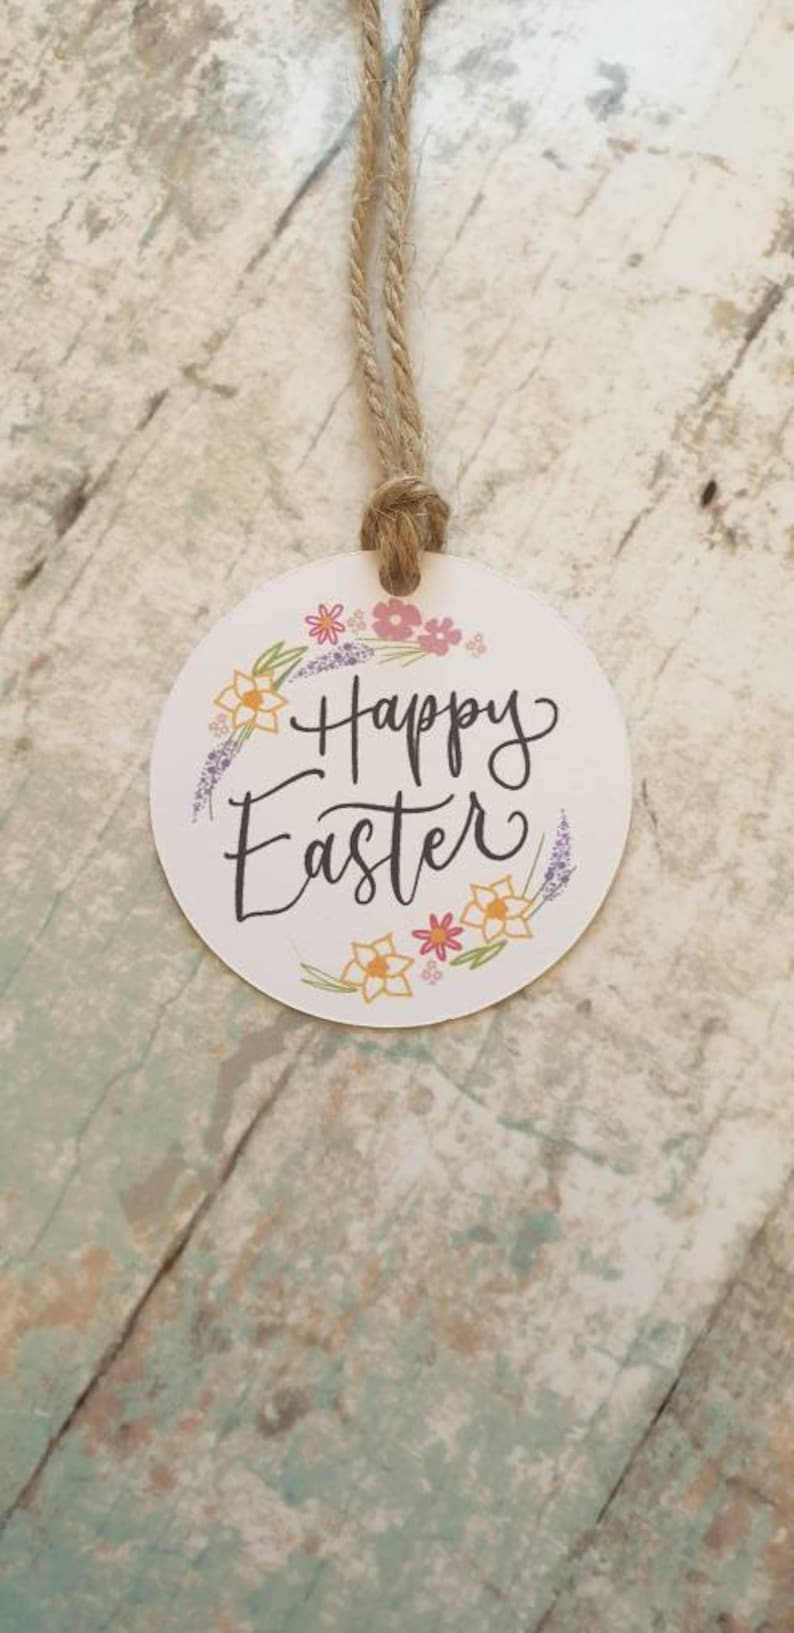 spring wreath happy Easter flowers label gift wrap Easter circular tags